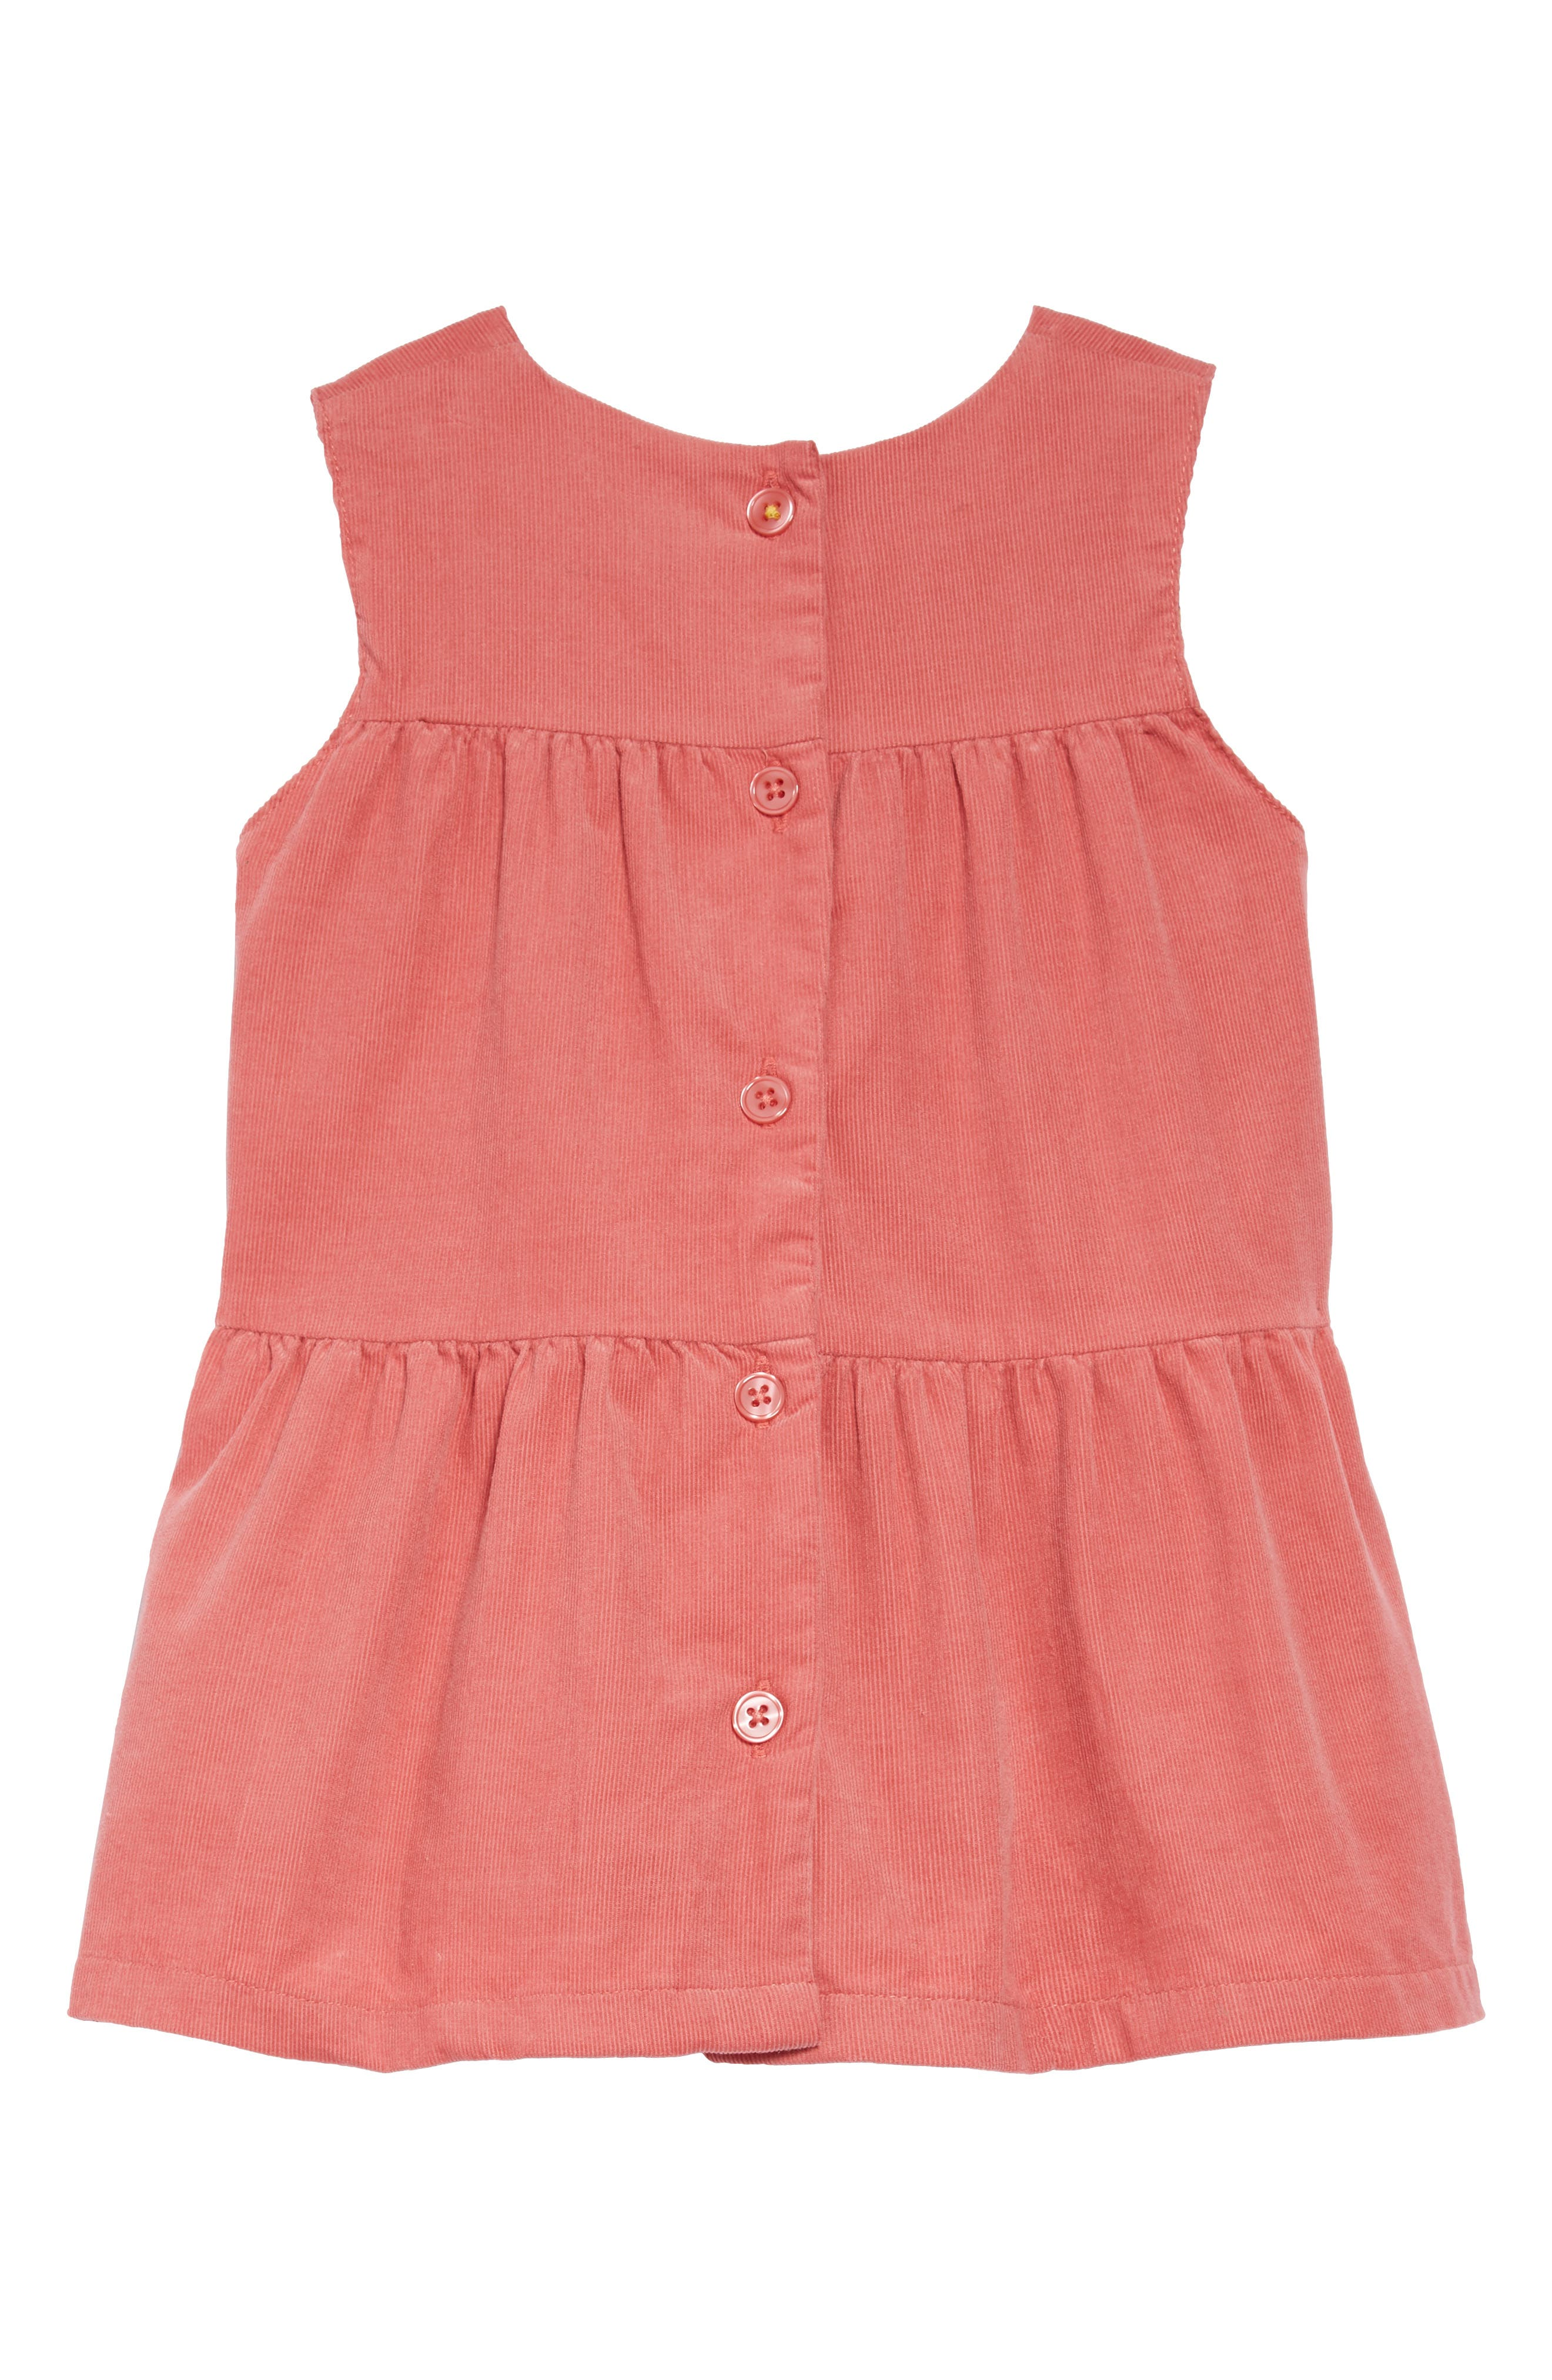 MINI BODEN,                             Tiered Corduroy Dress,                             Alternate thumbnail 2, color,                             664